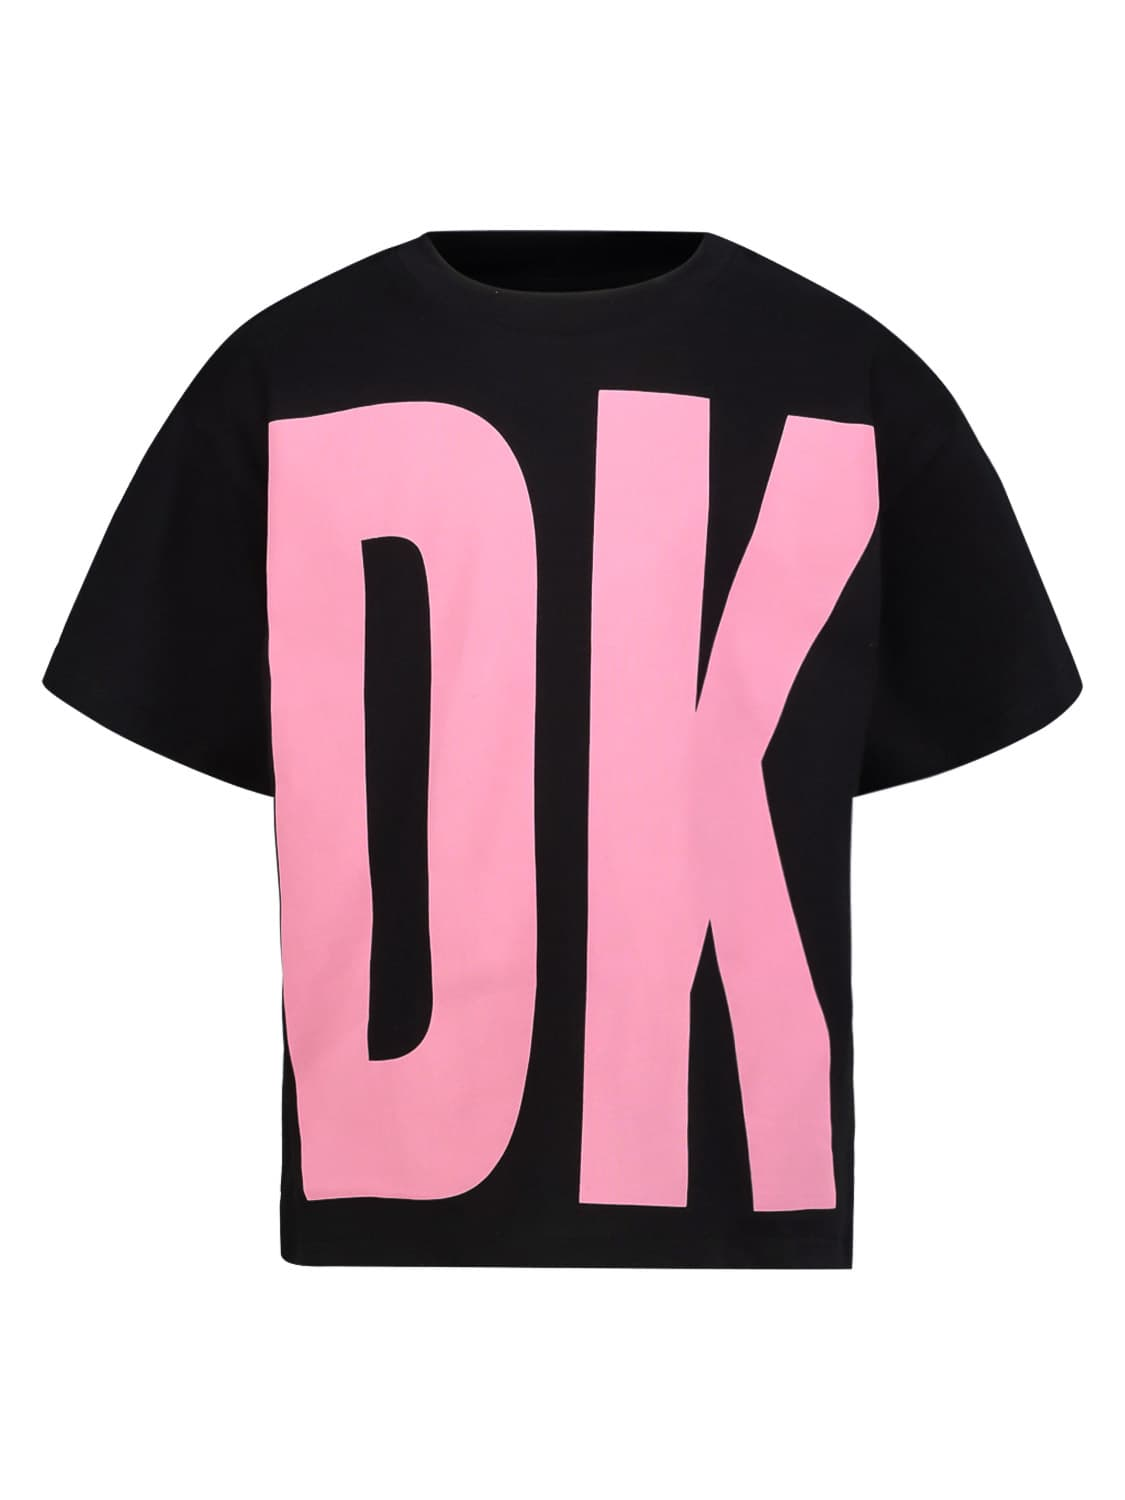 DKNY KIDS T-SHIRT FOR GIRLS